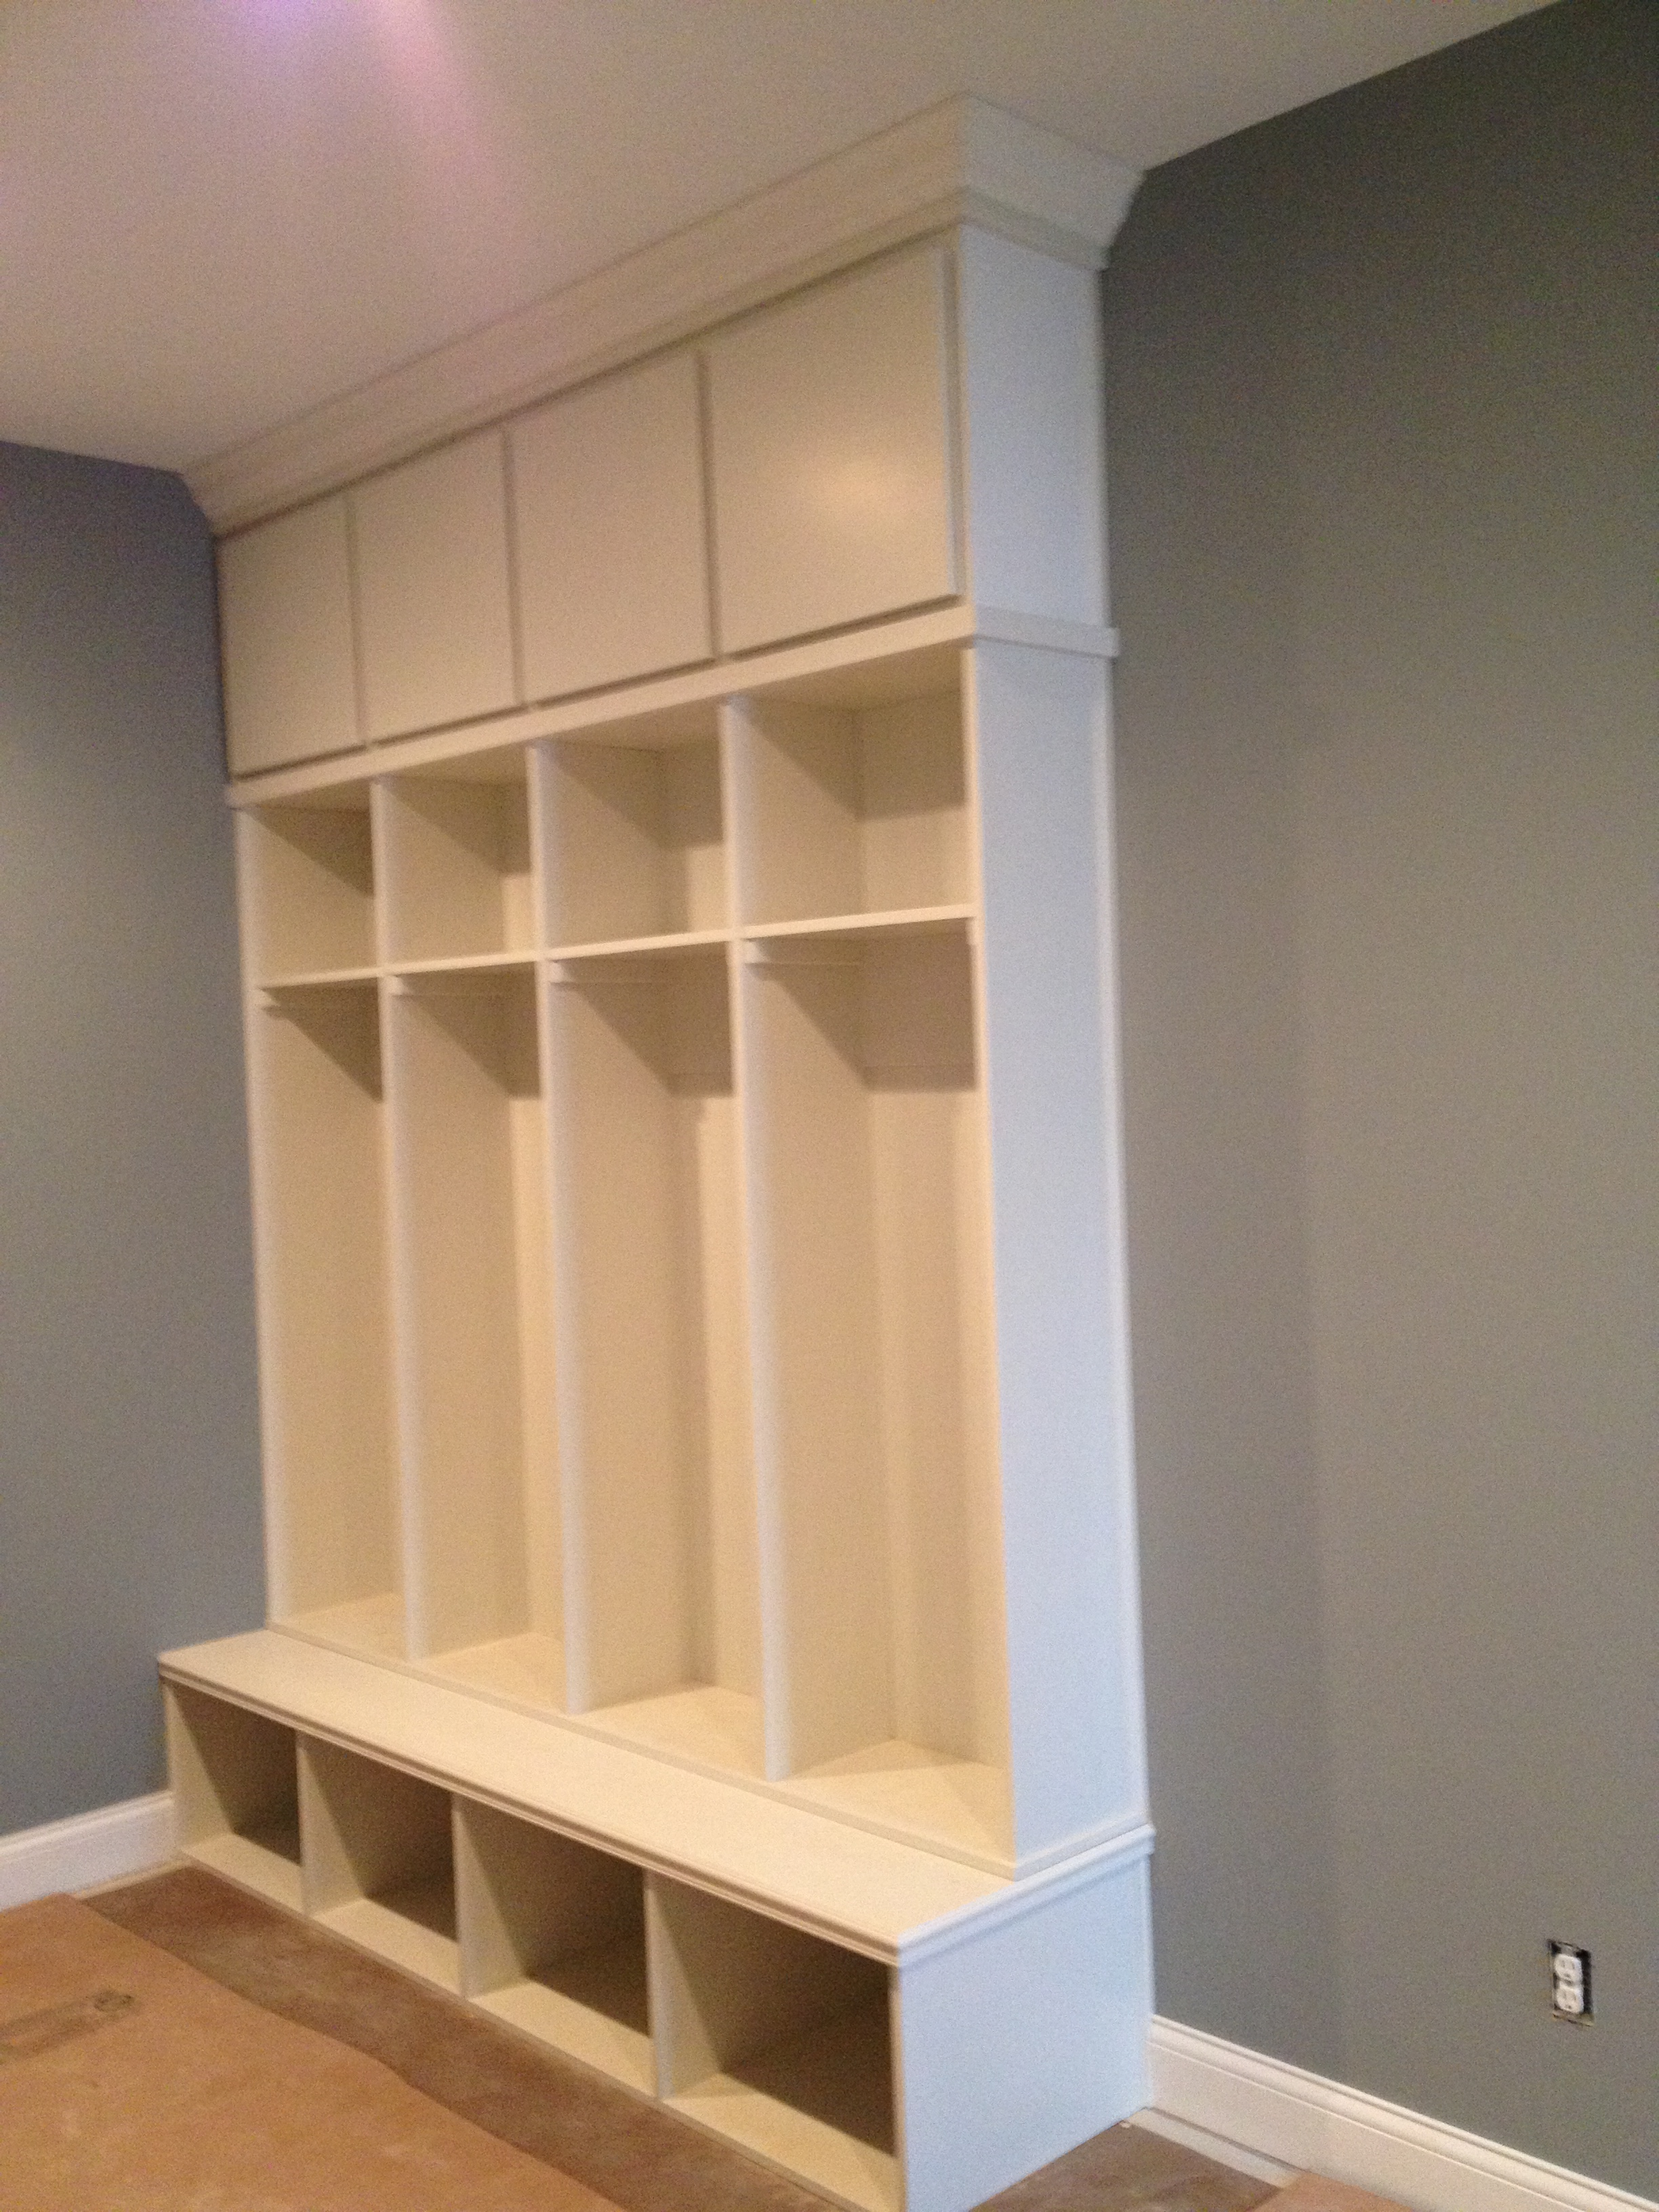 ... bring your shelving and storage ideas to us. We manufacture shelving and storage built-ins to your specifications and will finish them to match your ... & Shelving - Miller Door And Trim